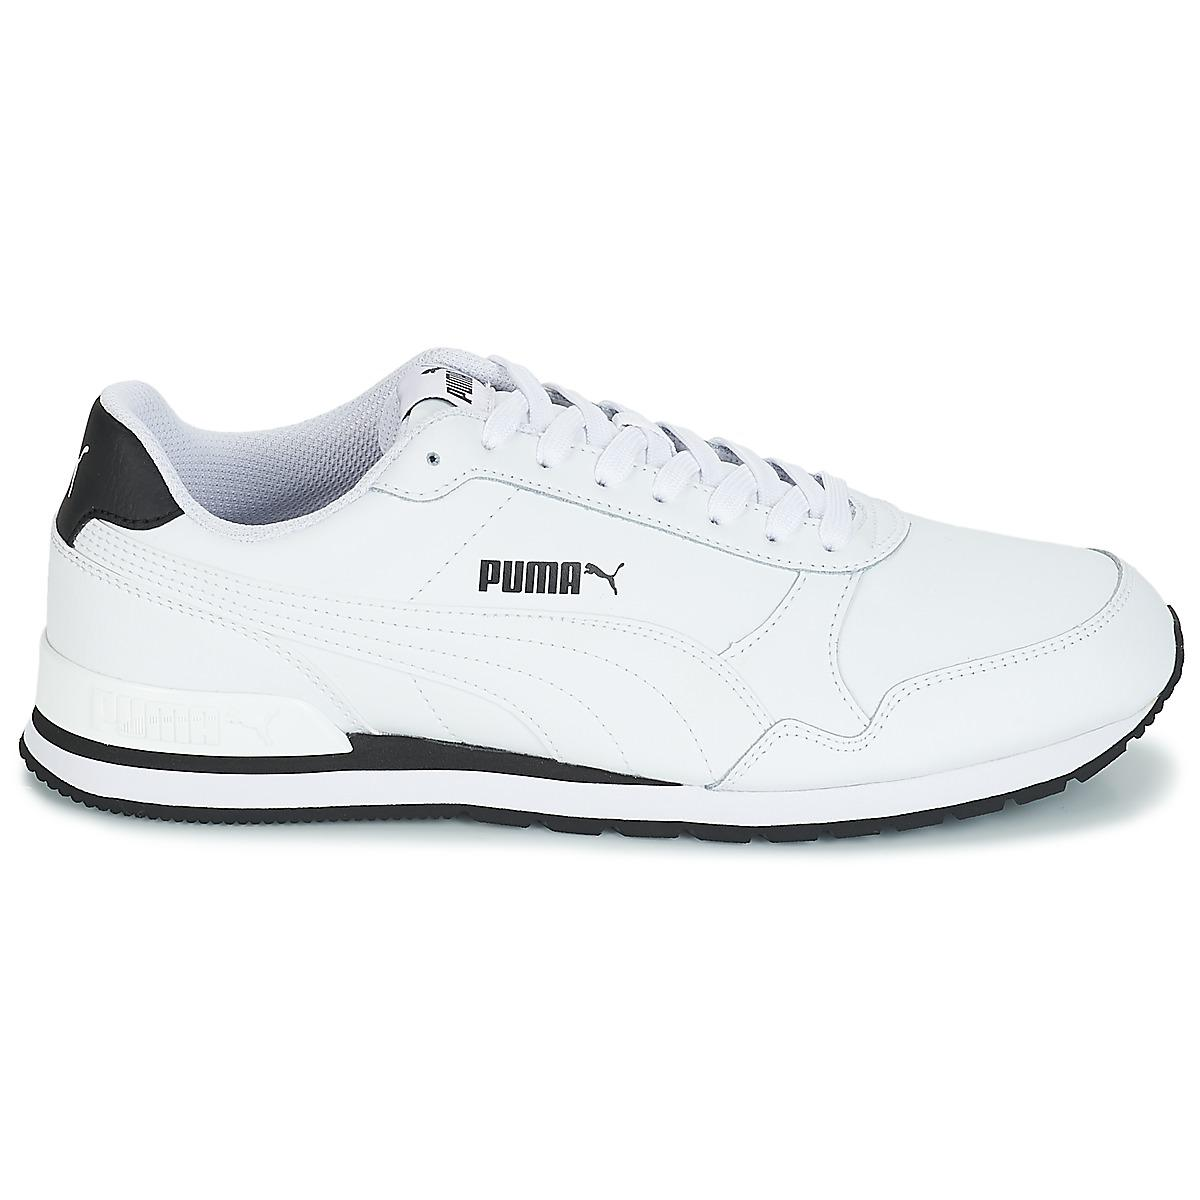 PUMA St Runner V2 Ful.wht Shoes (trainers) in White for Men - Lyst a10f3045d